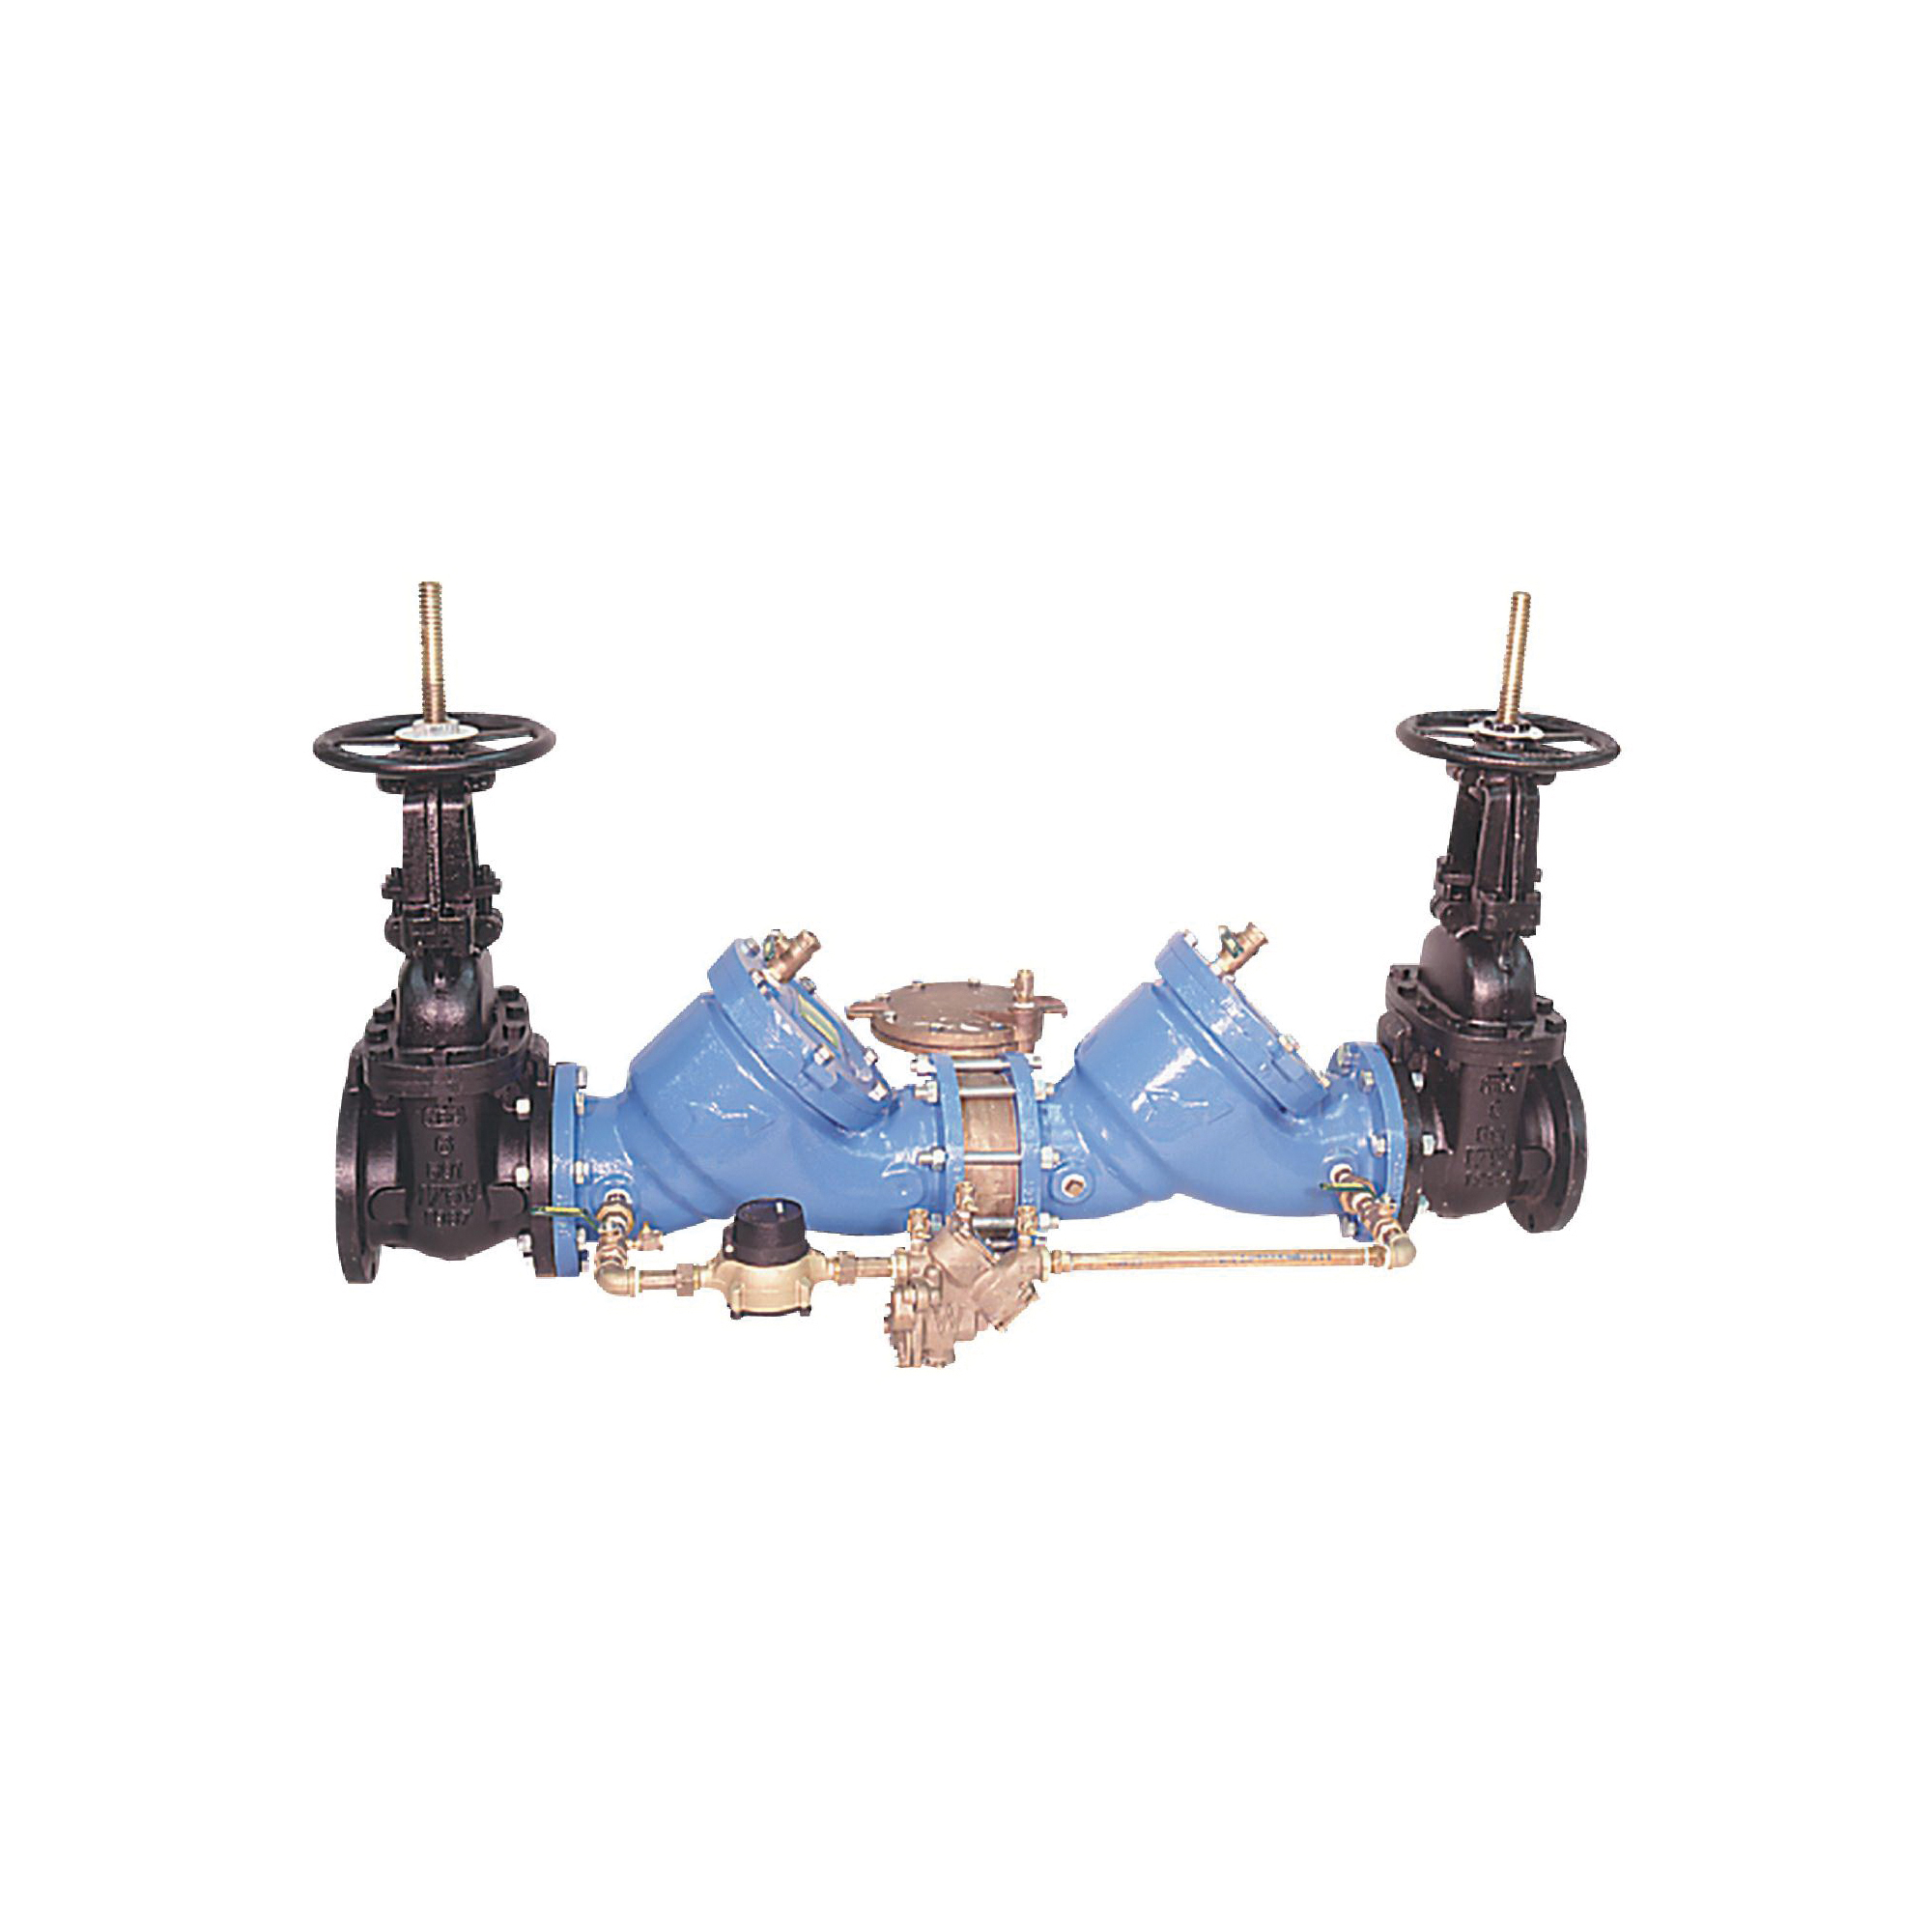 WATTS® 0387456 909RPDA Detector Assembly, 3 in, Resilient Seated Gate Valve, Cast Iron Body, Reduced Pressure Backflow